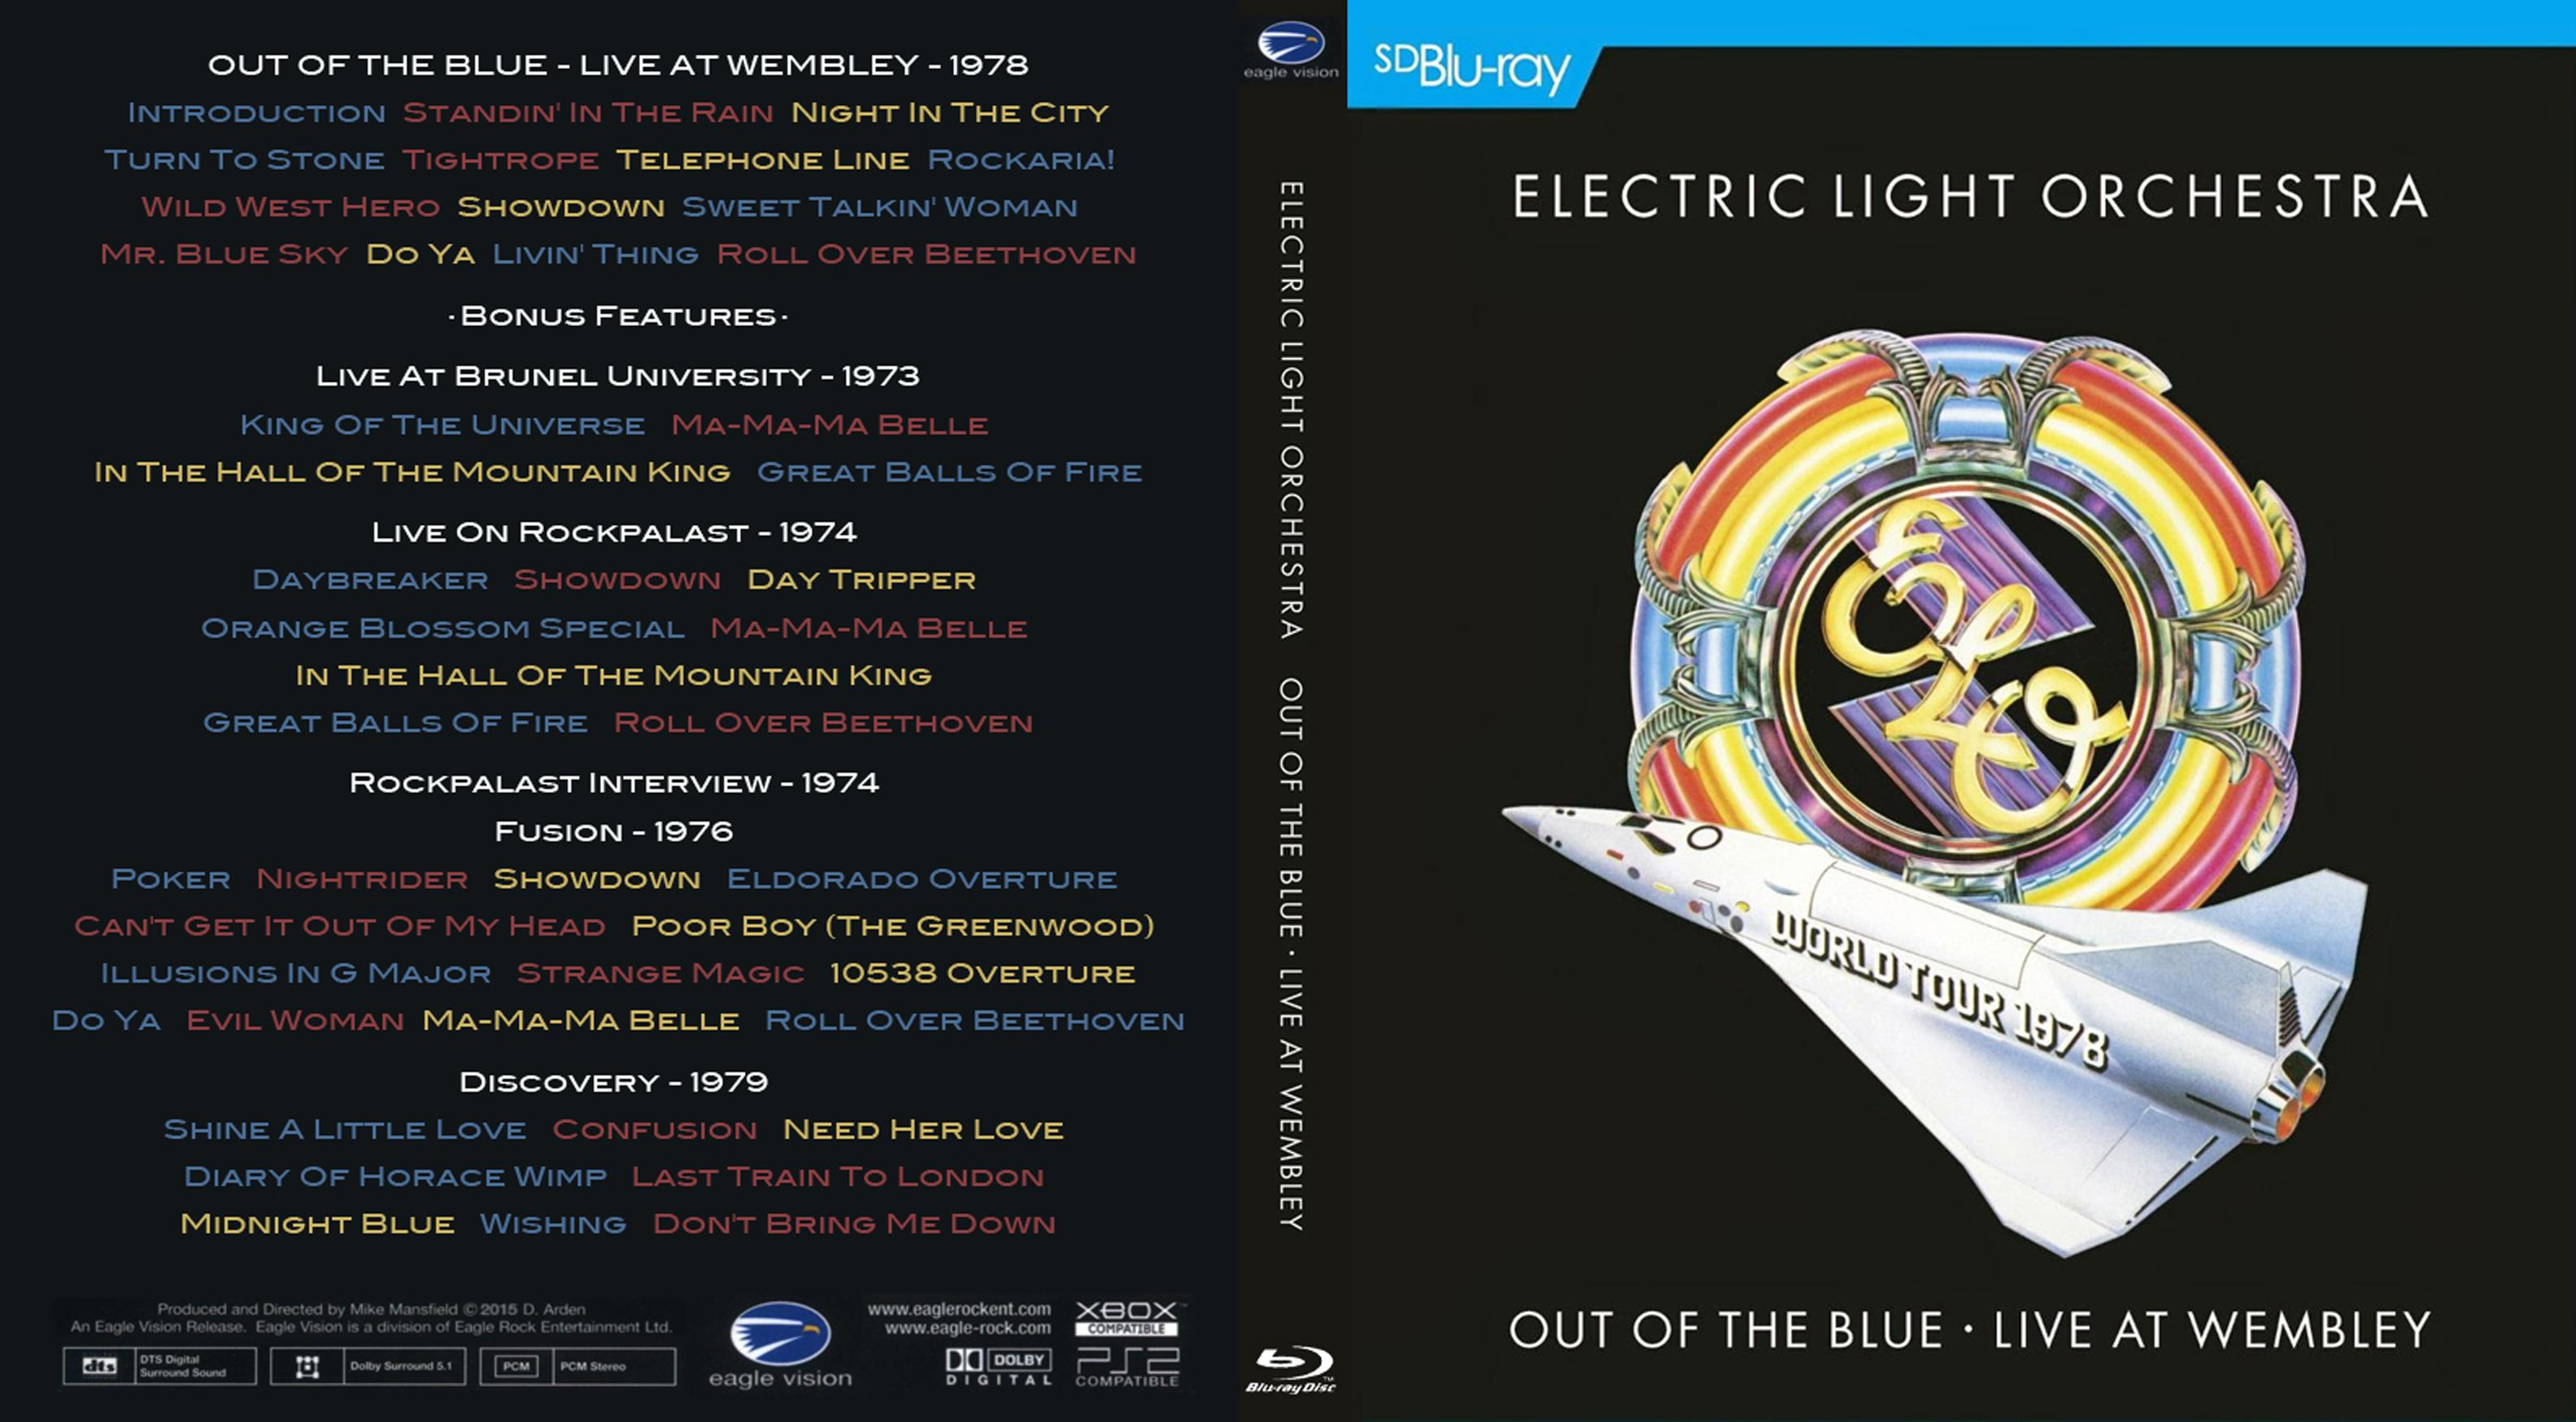 Out of the Blue-Live at Wembley